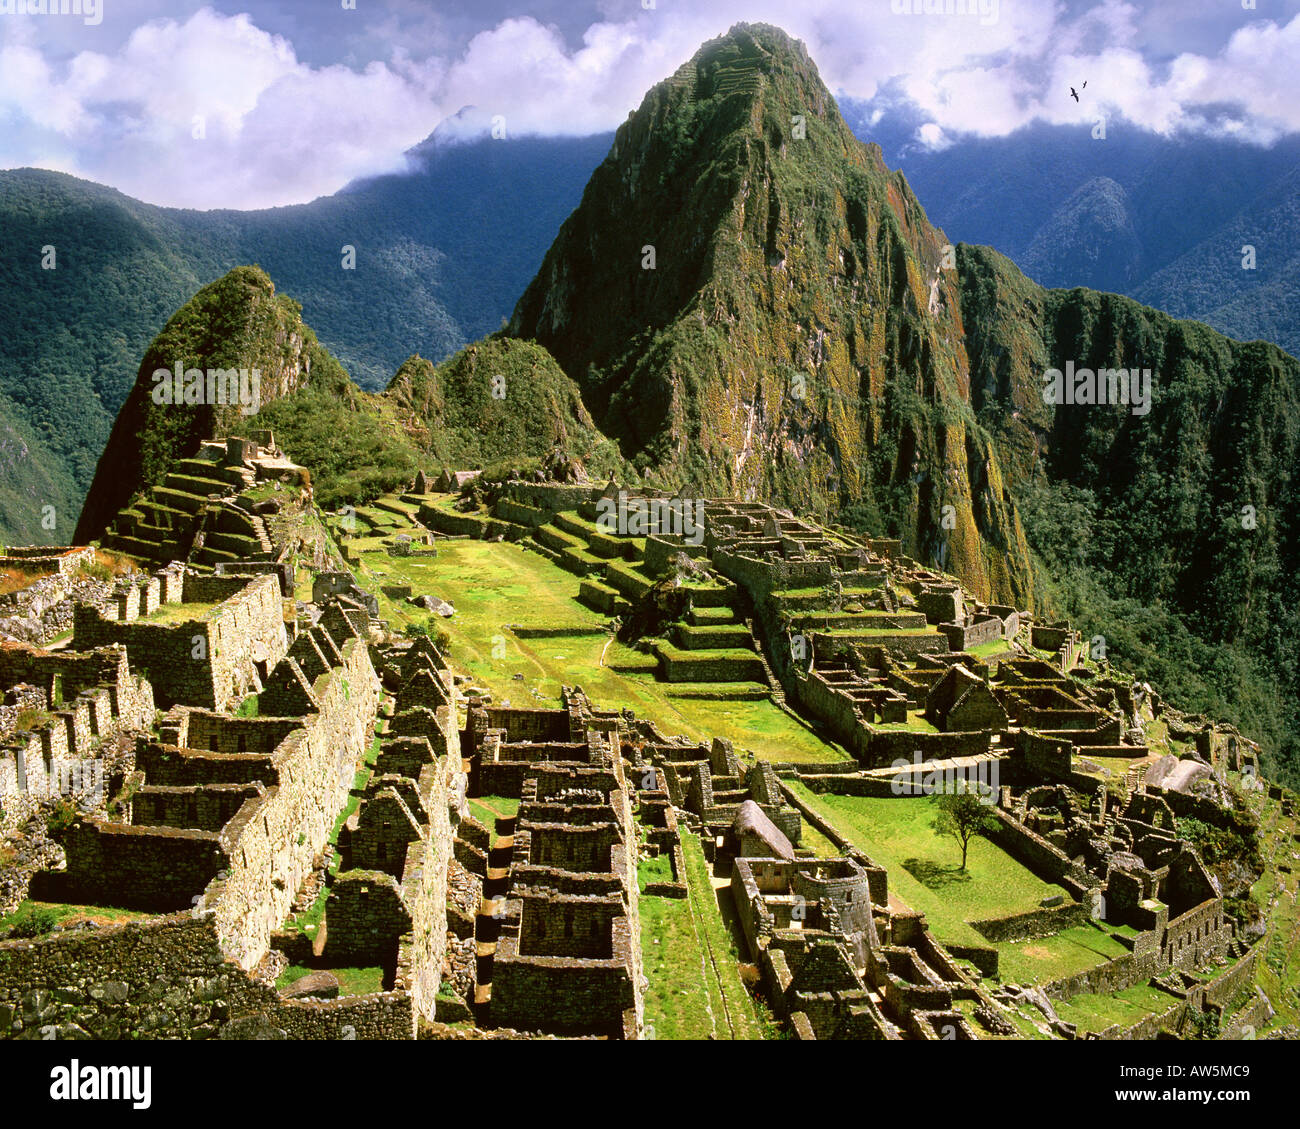 PE - CUZCO: Machu Picchu, the old Inca city in the Andes Stock Photo